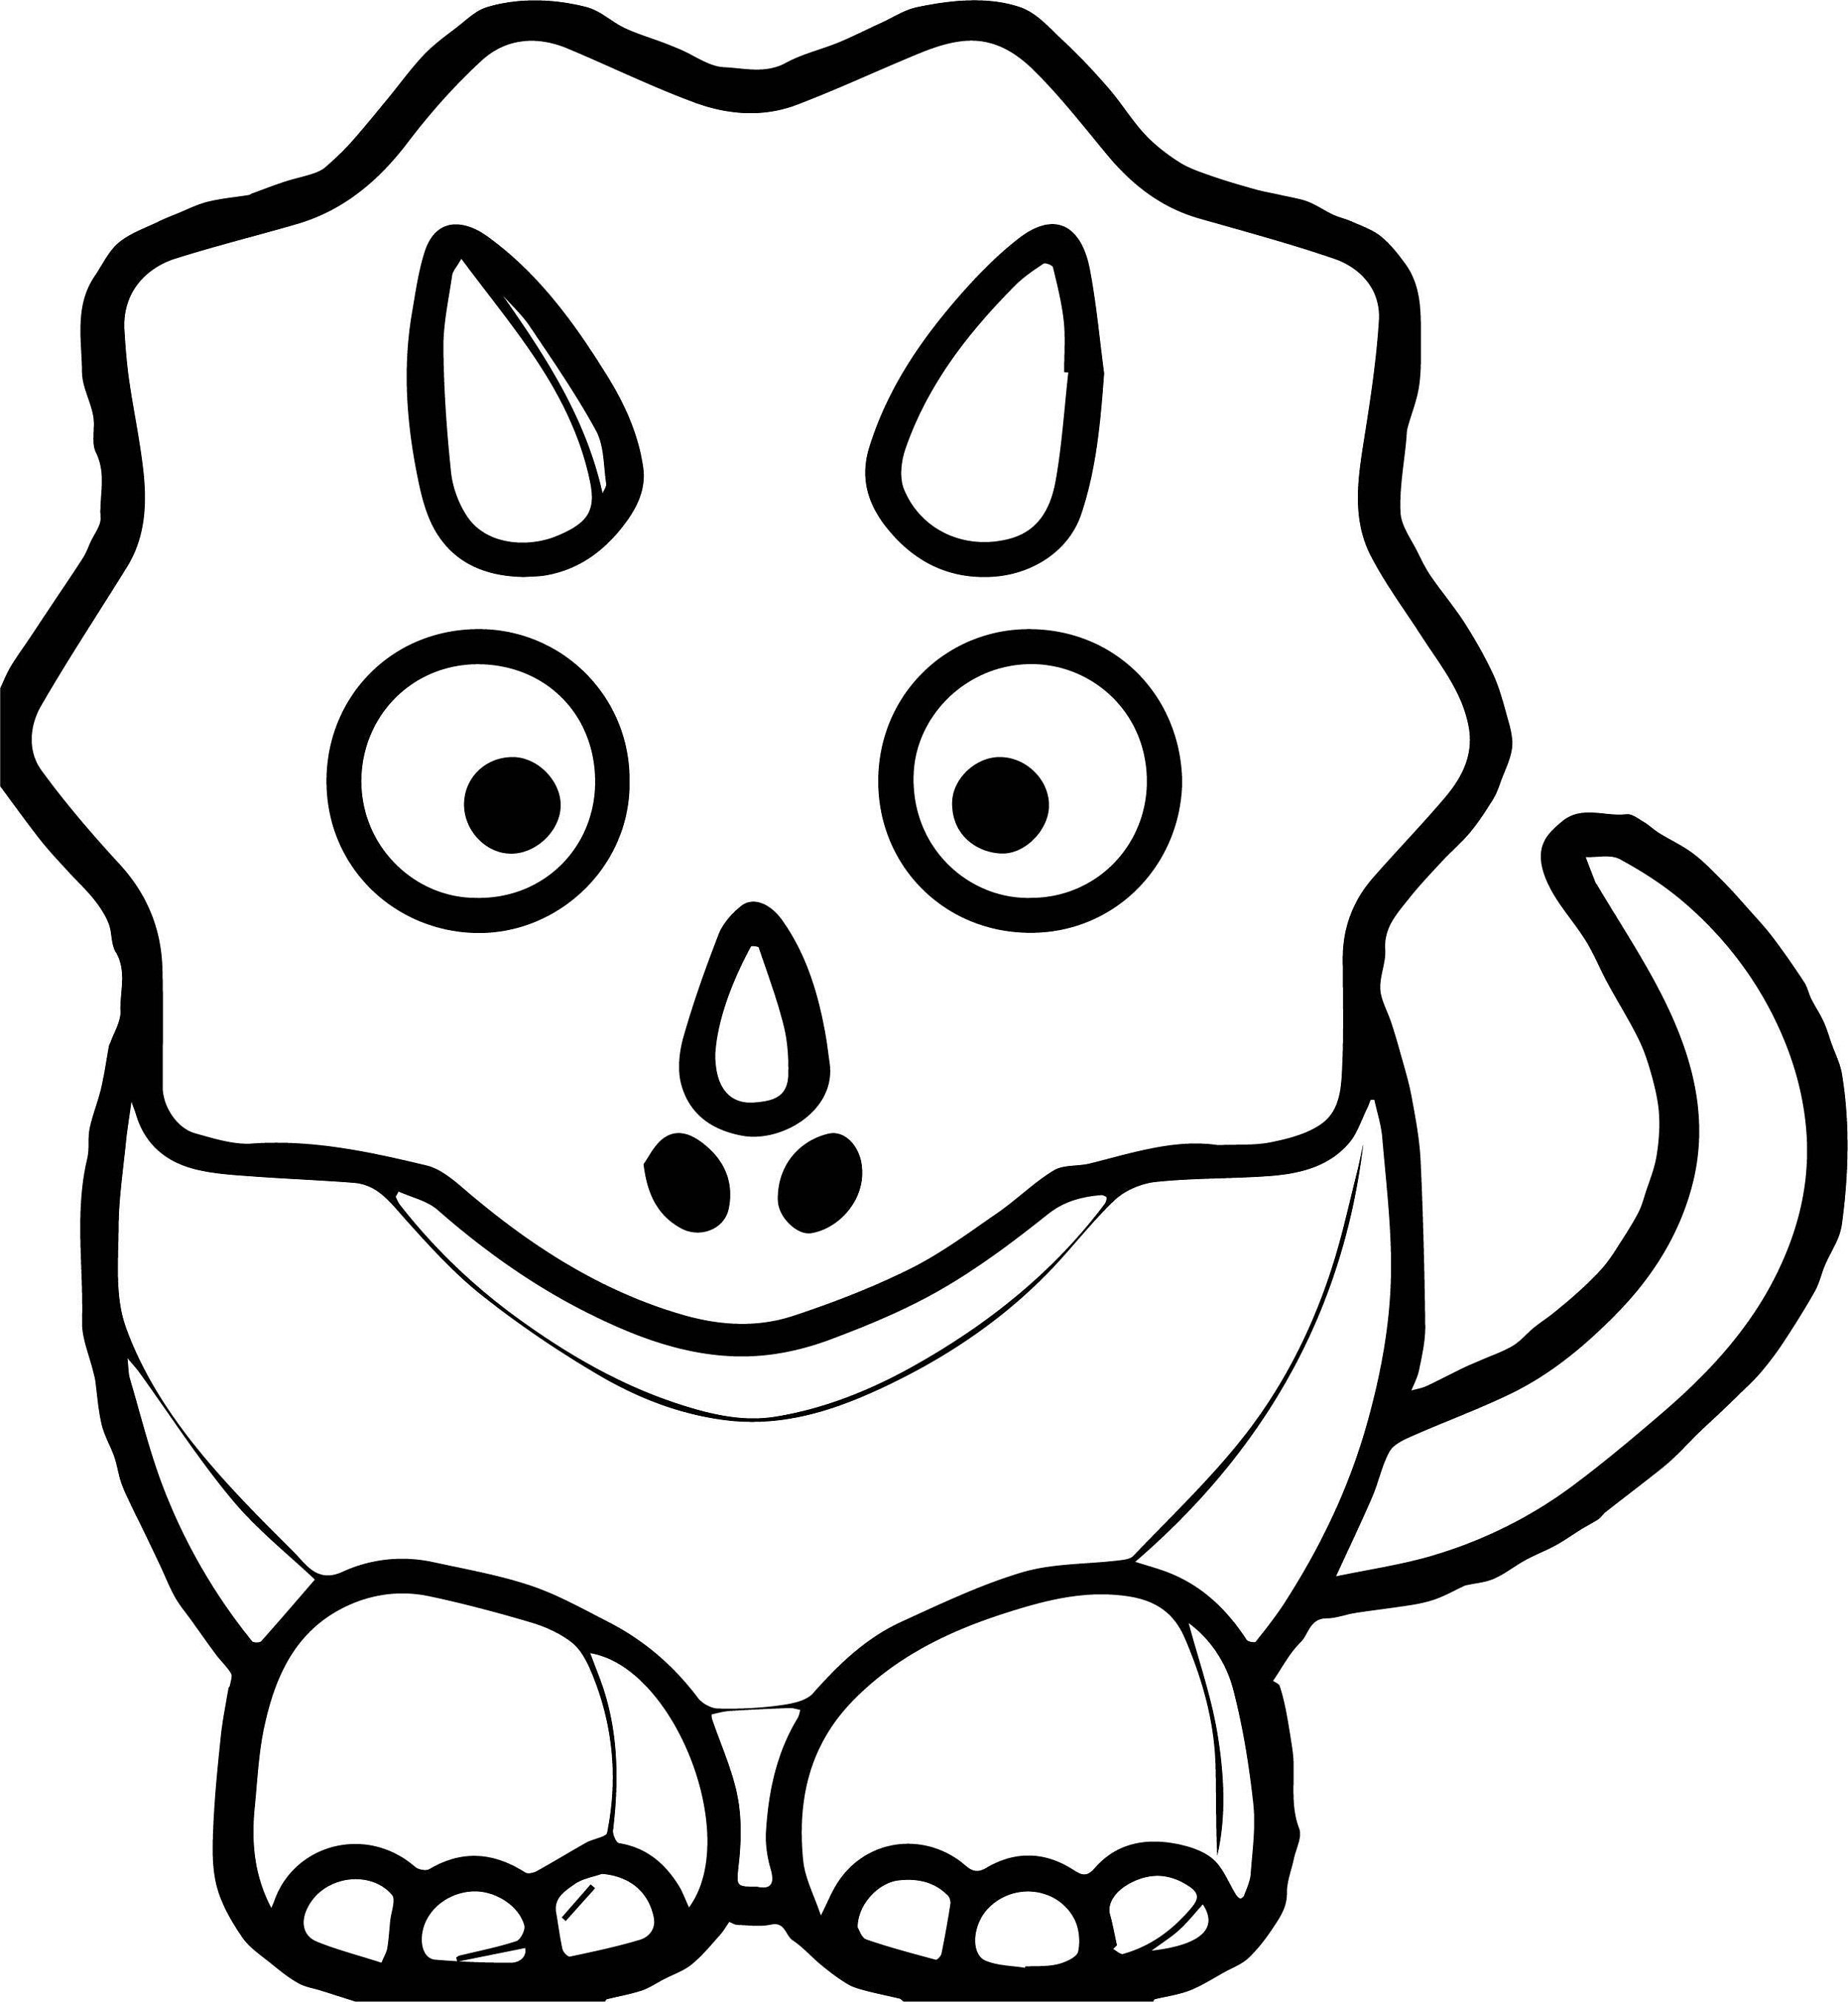 dinosaur printout free printable triceratops coloring pages for kids dinosaur printout 1 1